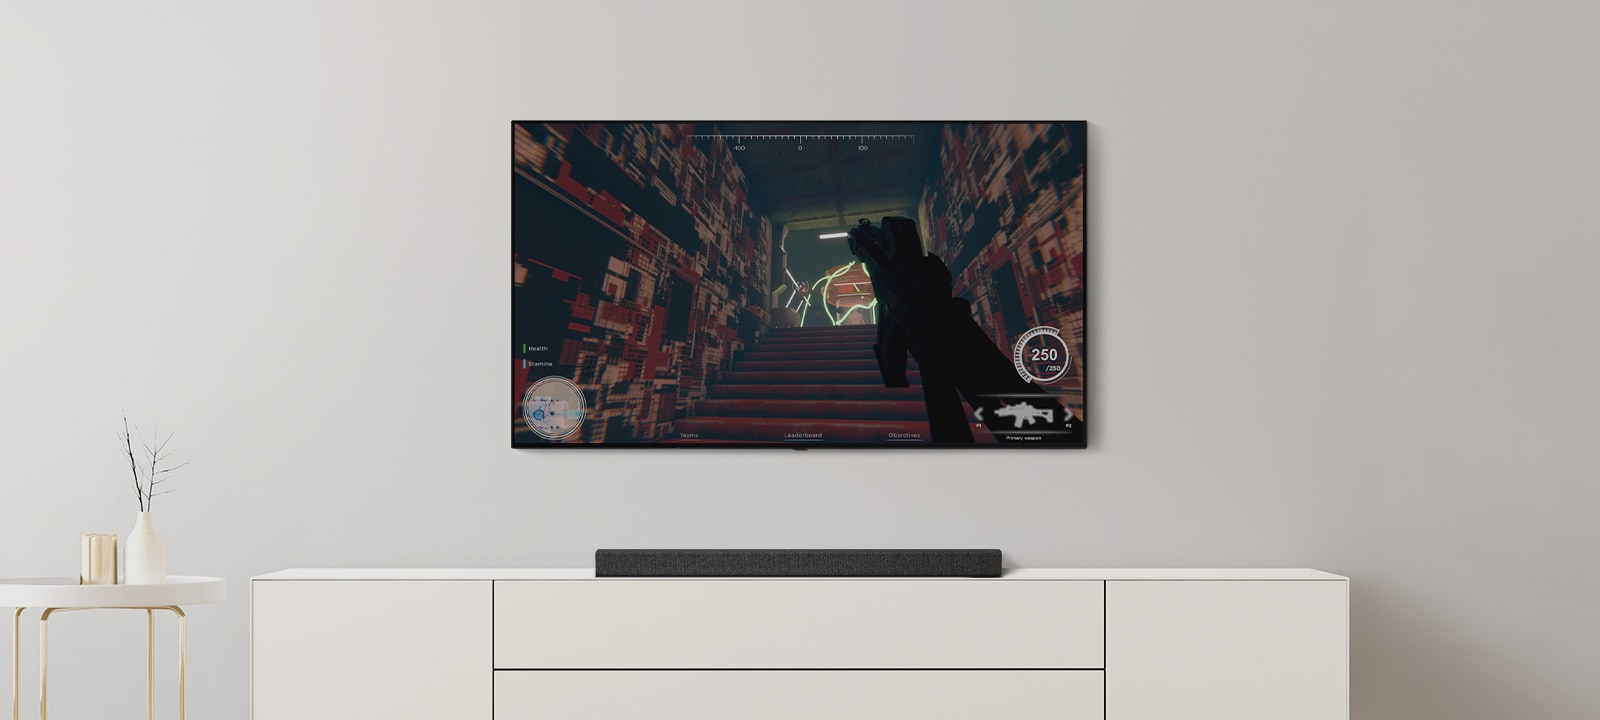 There is TV and Soundbar in a living room. An FPS game is on a TV screen and the TV channel is switched to soccer game. (play the video)